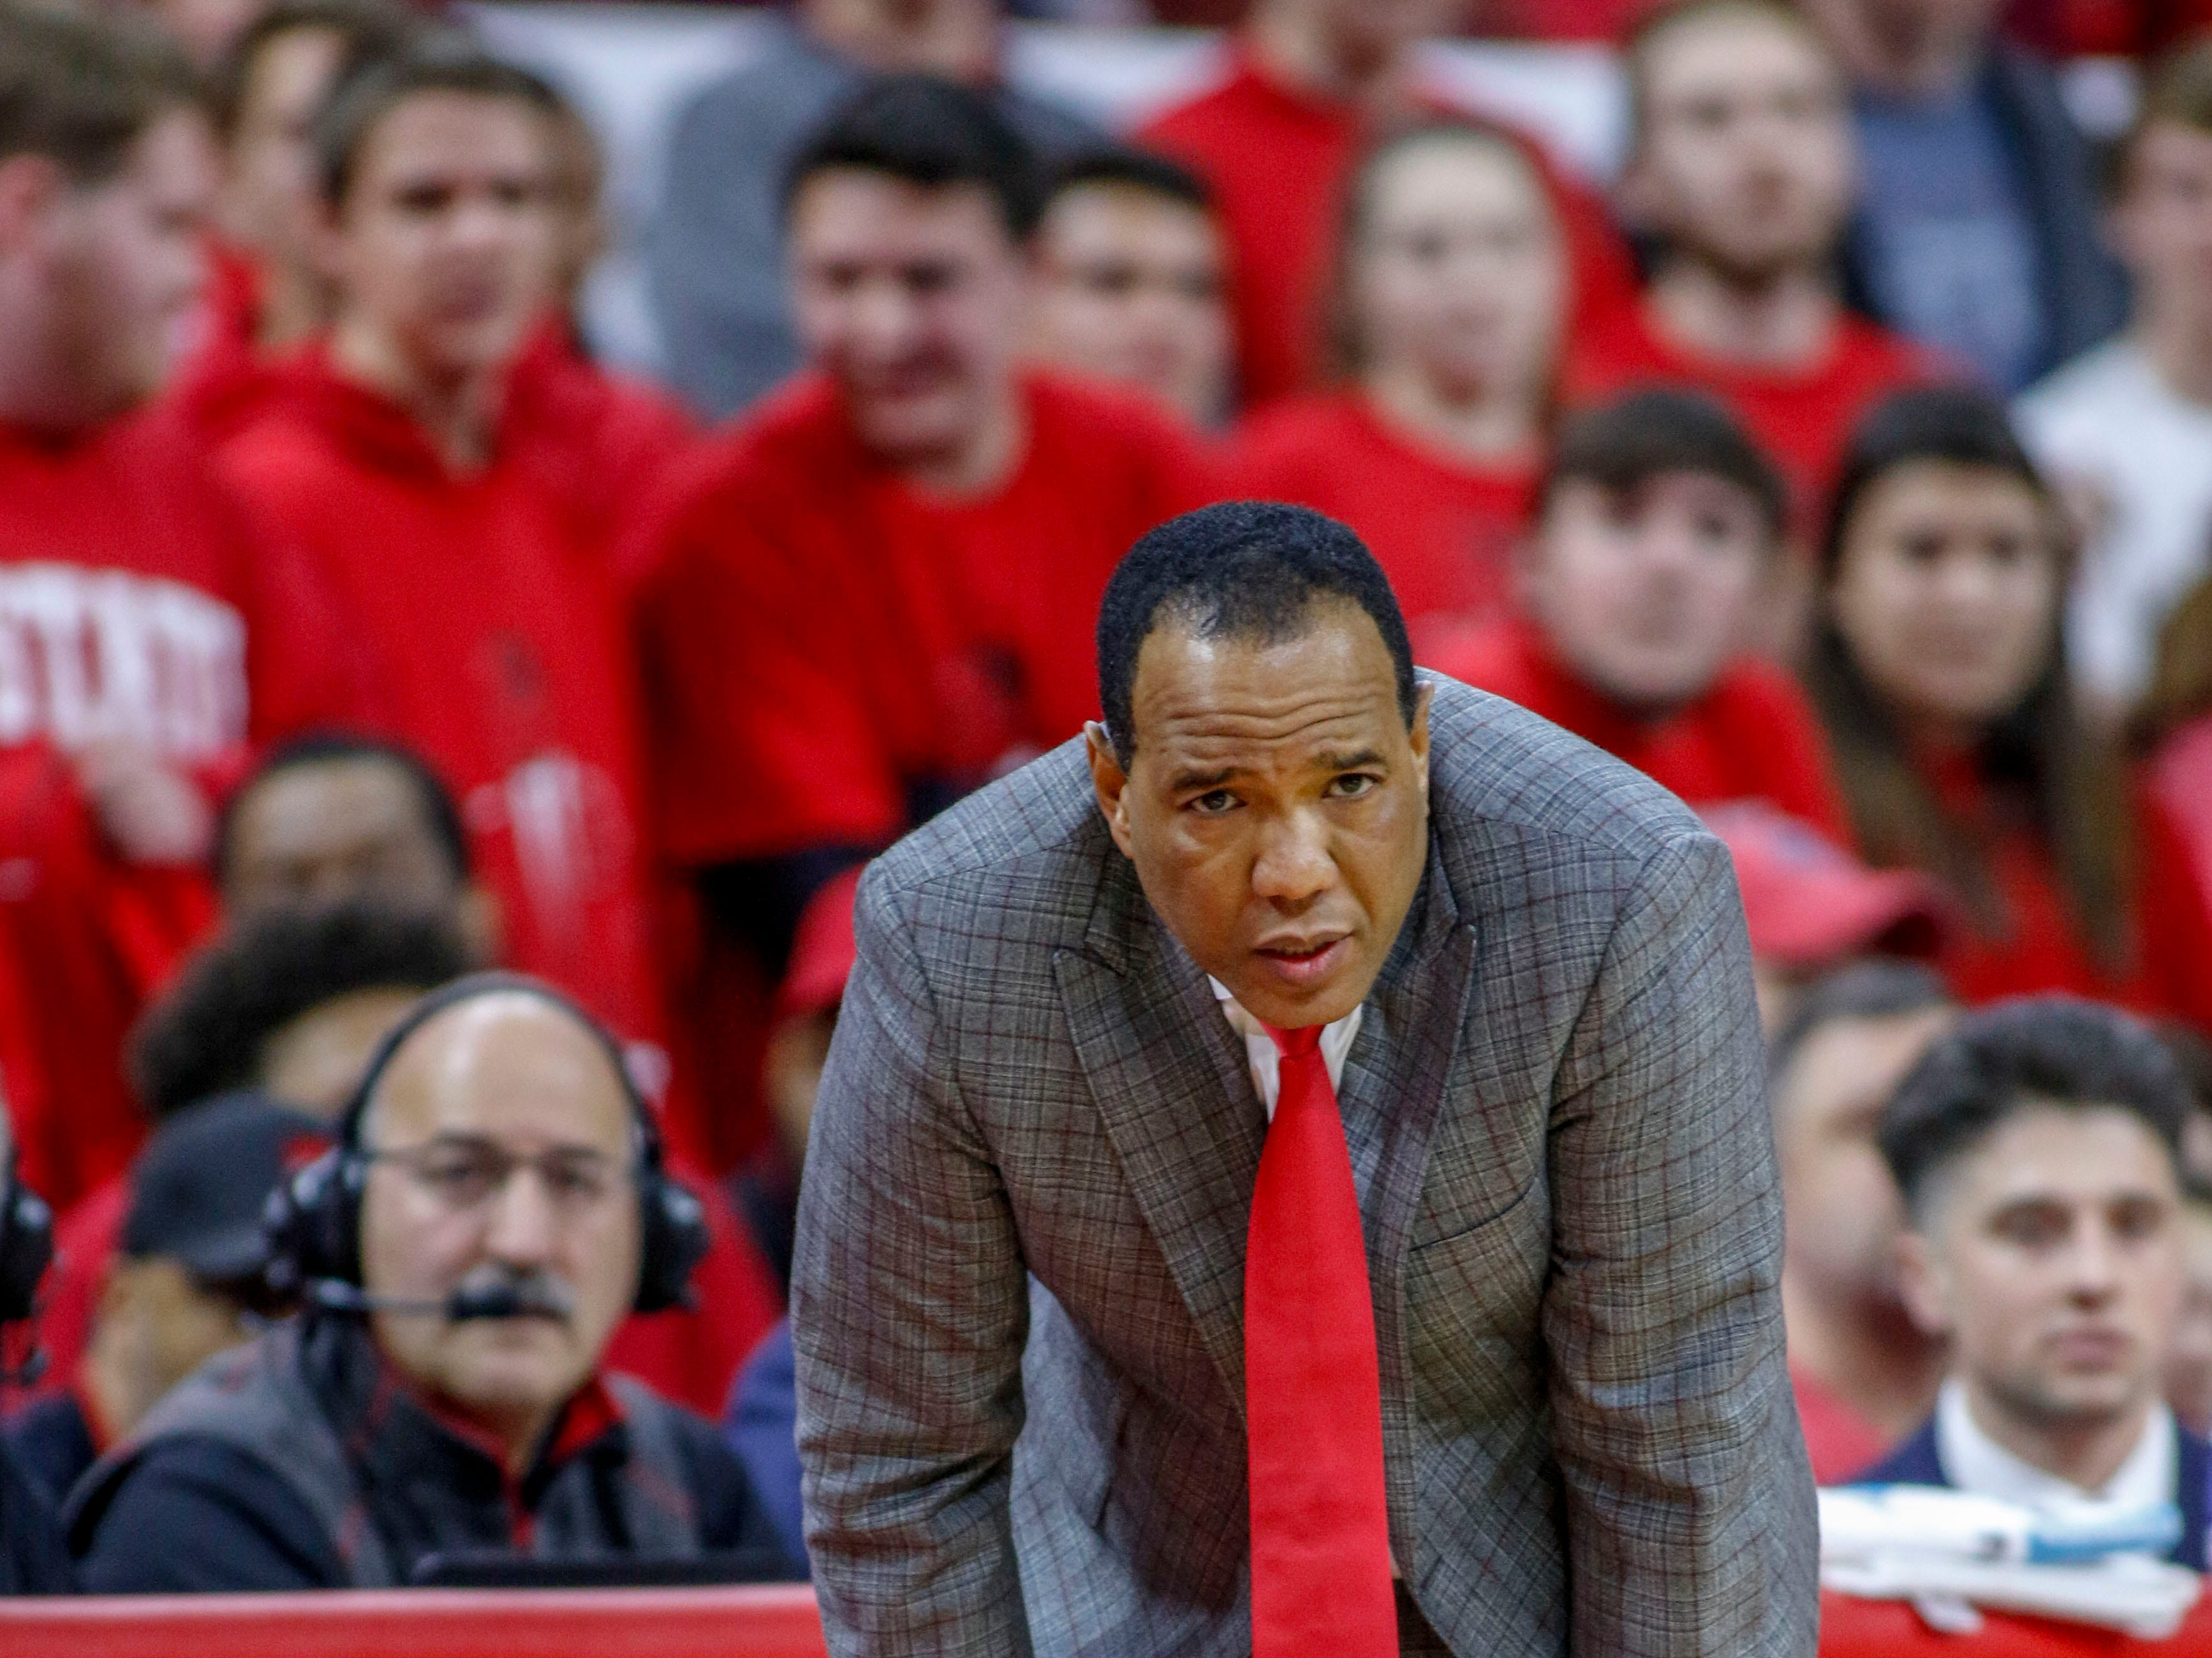 Dec 19, 2018; Raleigh, NC, USA; North Carolina State Wolfpack head coach Kevin Keatts watches his team as they play the Auburn Tigers in the second half at PNC Arena. The North Carolina State Wolfpack won 78-71. Mandatory Credit: Nell Redmond-USA TODAY Sports